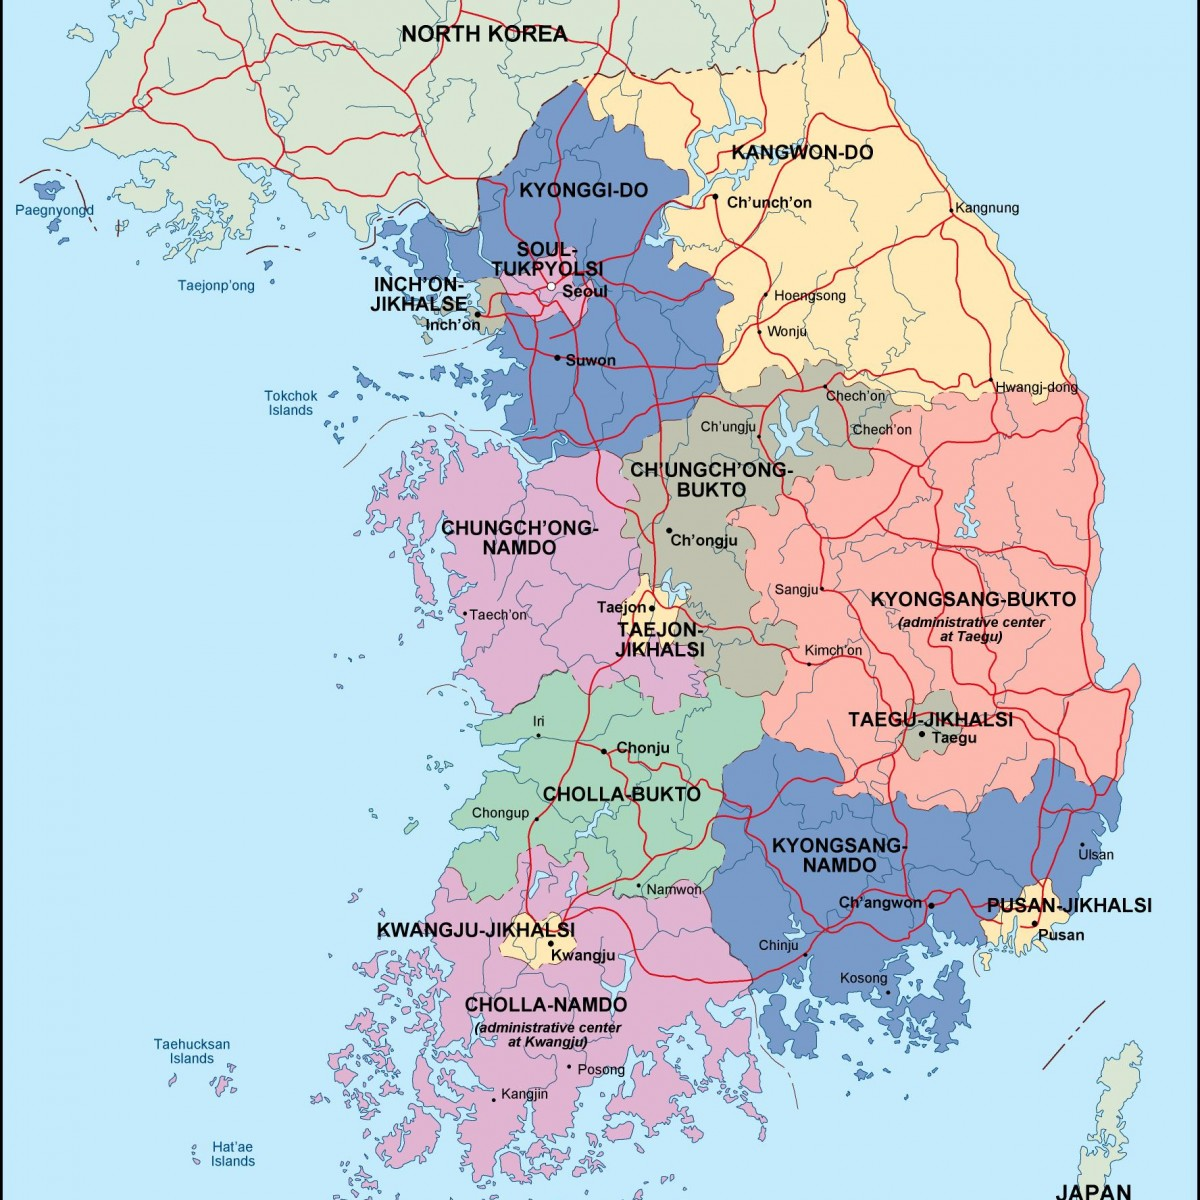 south korea political map eps illustrator map a vector eps maps designed by our cartographers city victoria city victoria tx